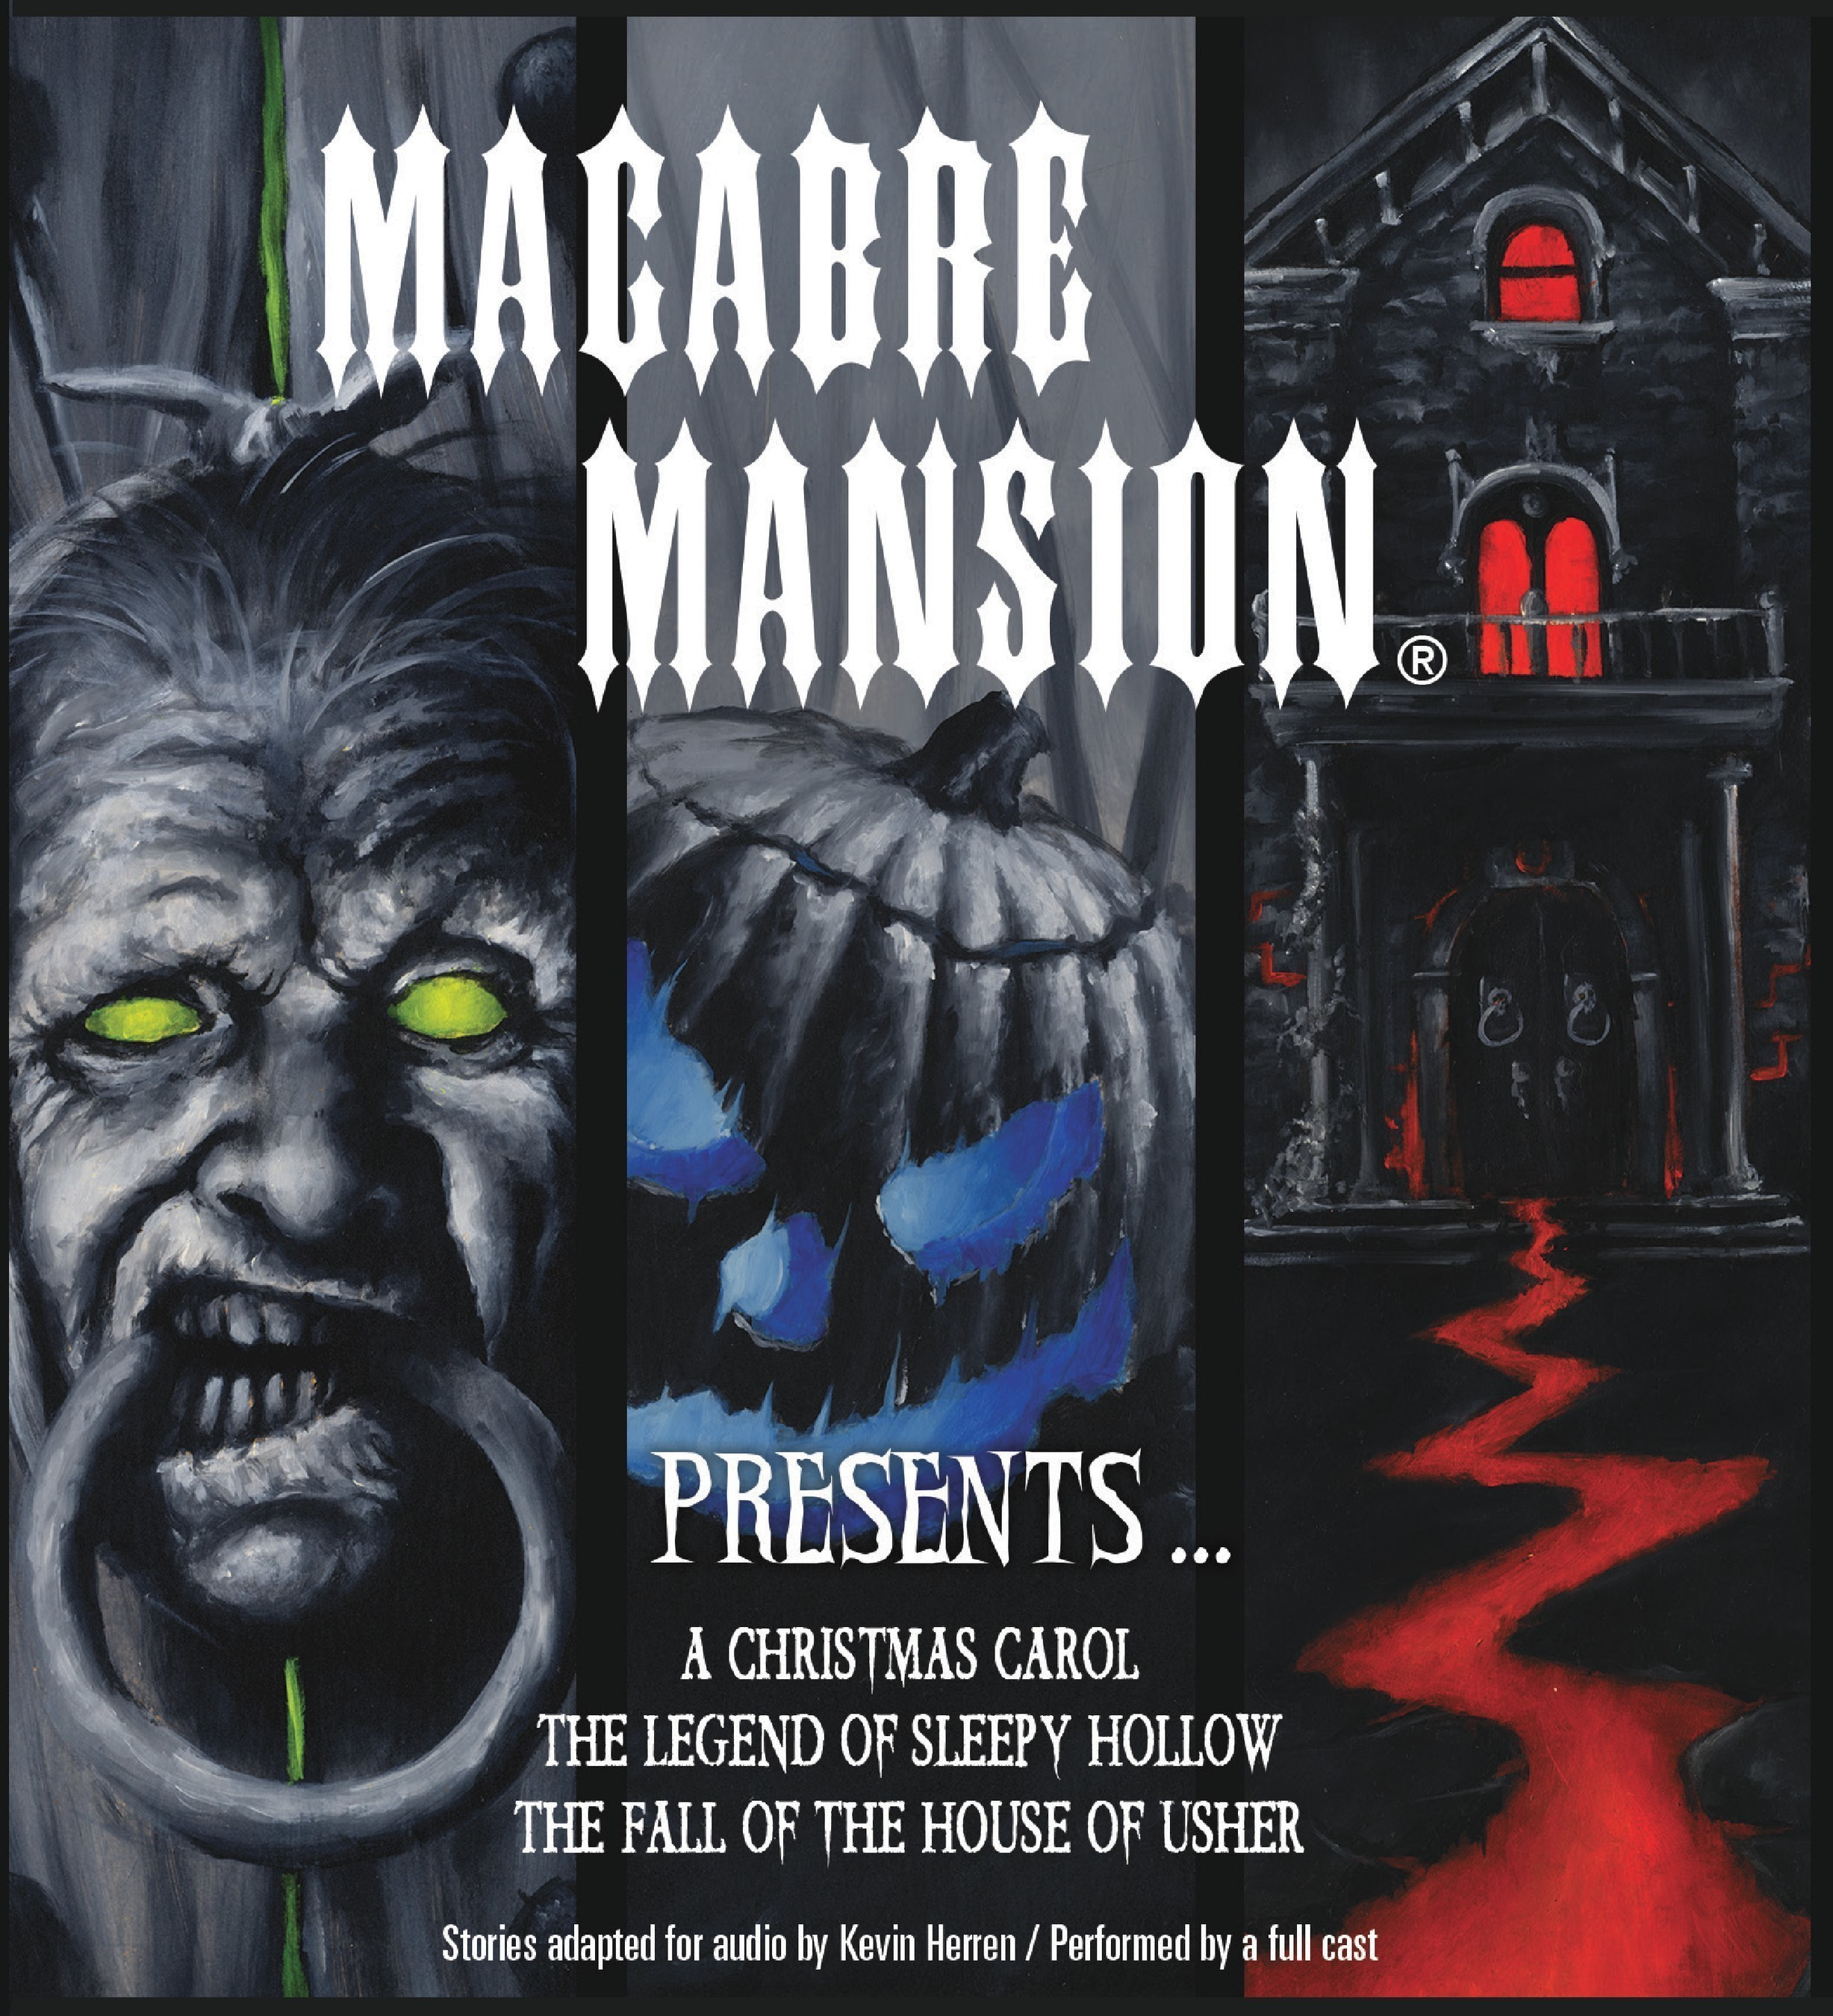 Macabre Mansion Releases Collection of Three Classic Audio Dramas Voiced by Well-known Hollywood Actors